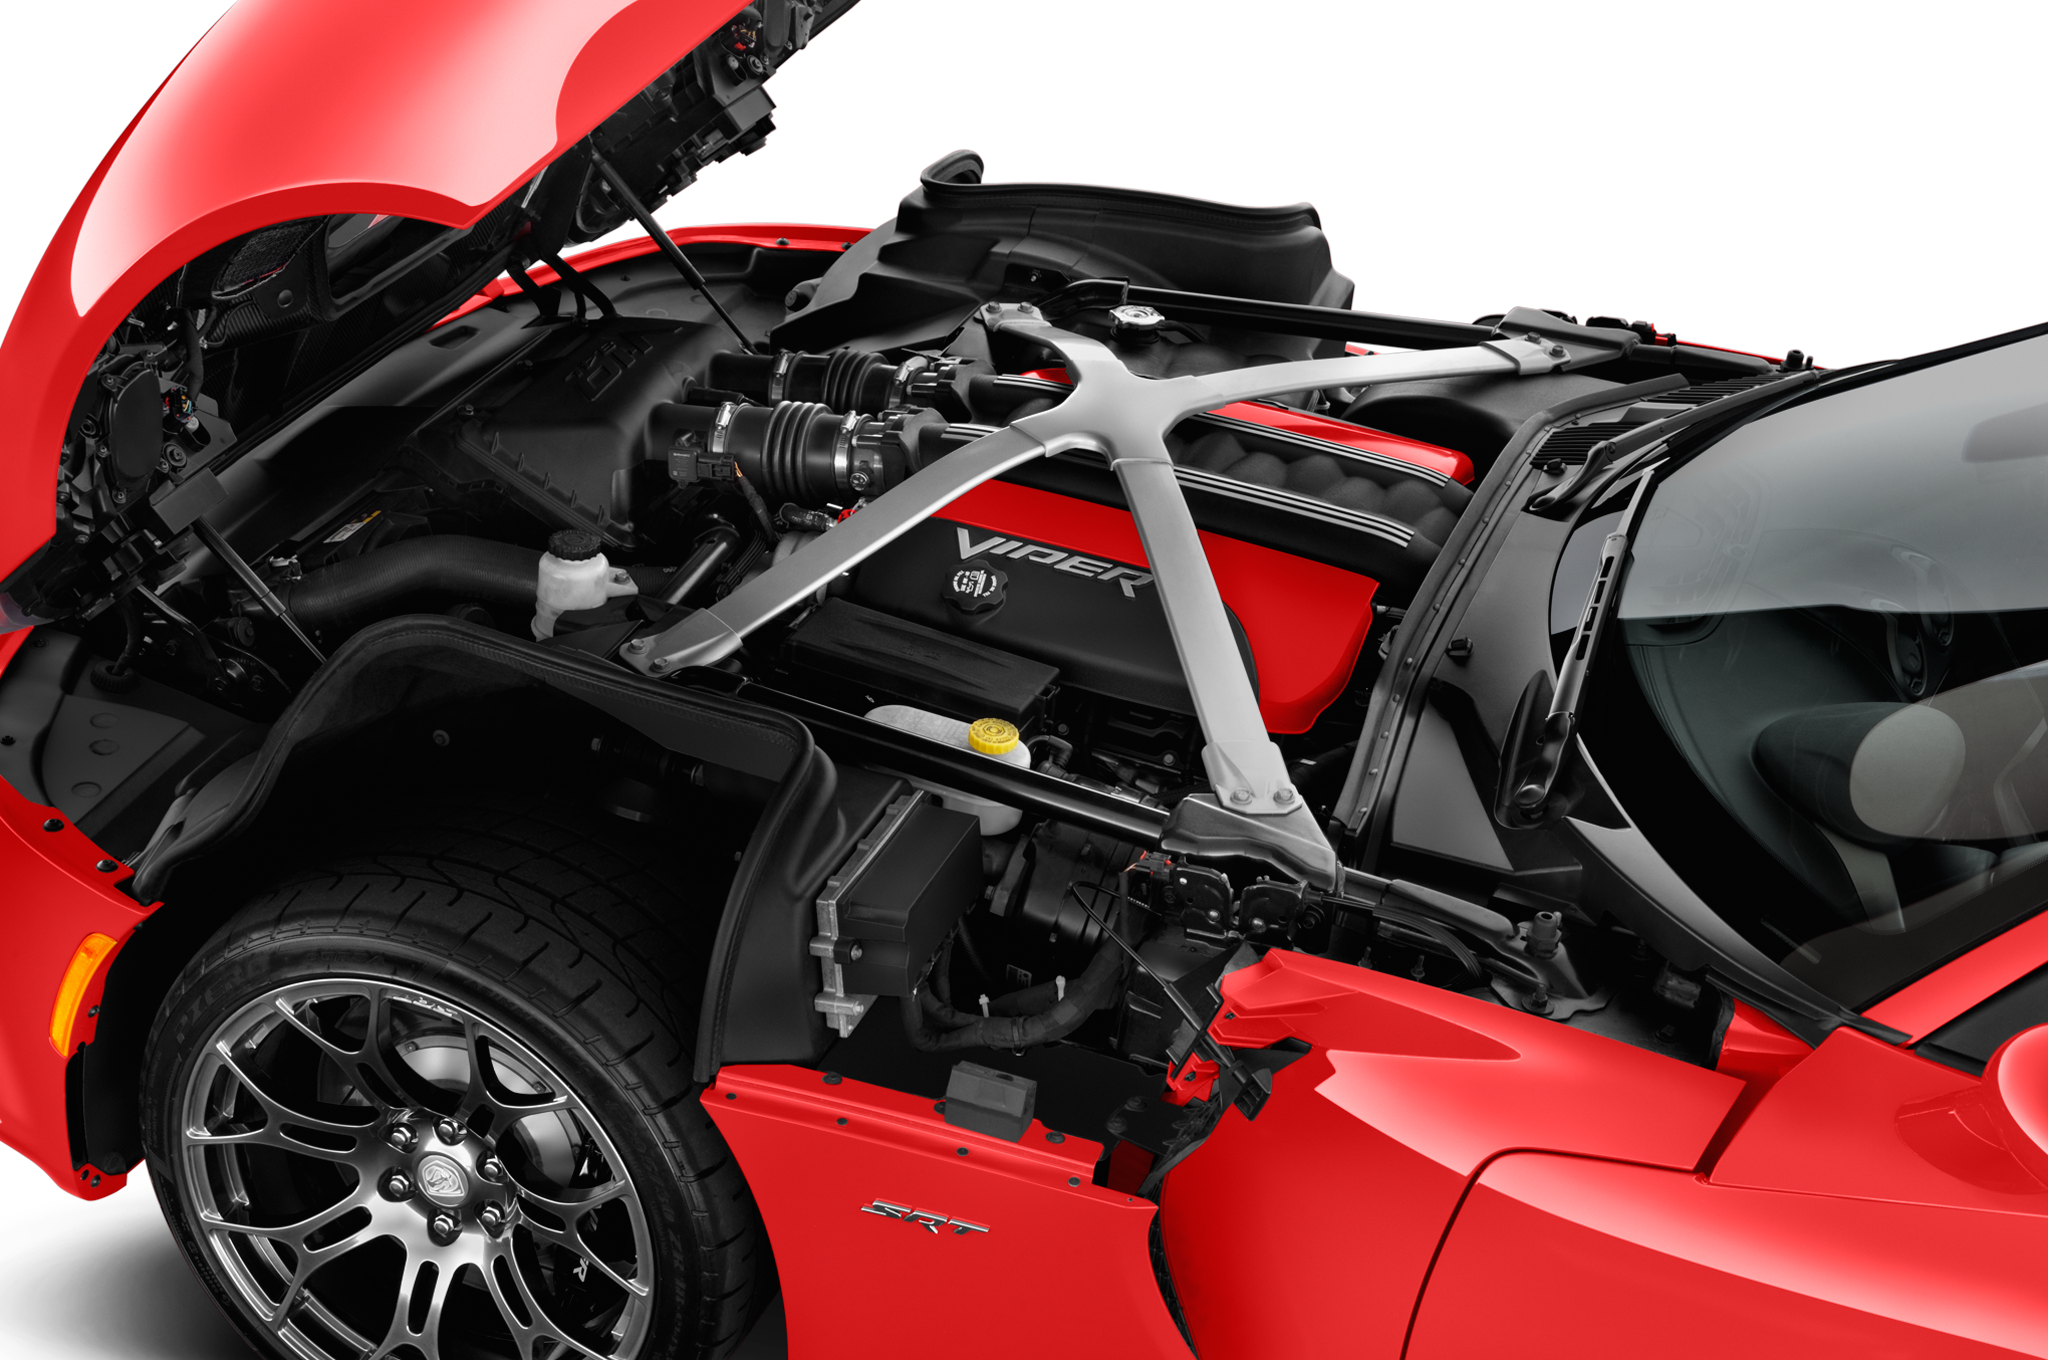 2015 Dodge Viper Wiring Harness Online Schematic Diagram 1970 Charger The Top 10 Most Interesting Vehicles At Walter P Chrysler Museum Rh Automobilemag Com Journey